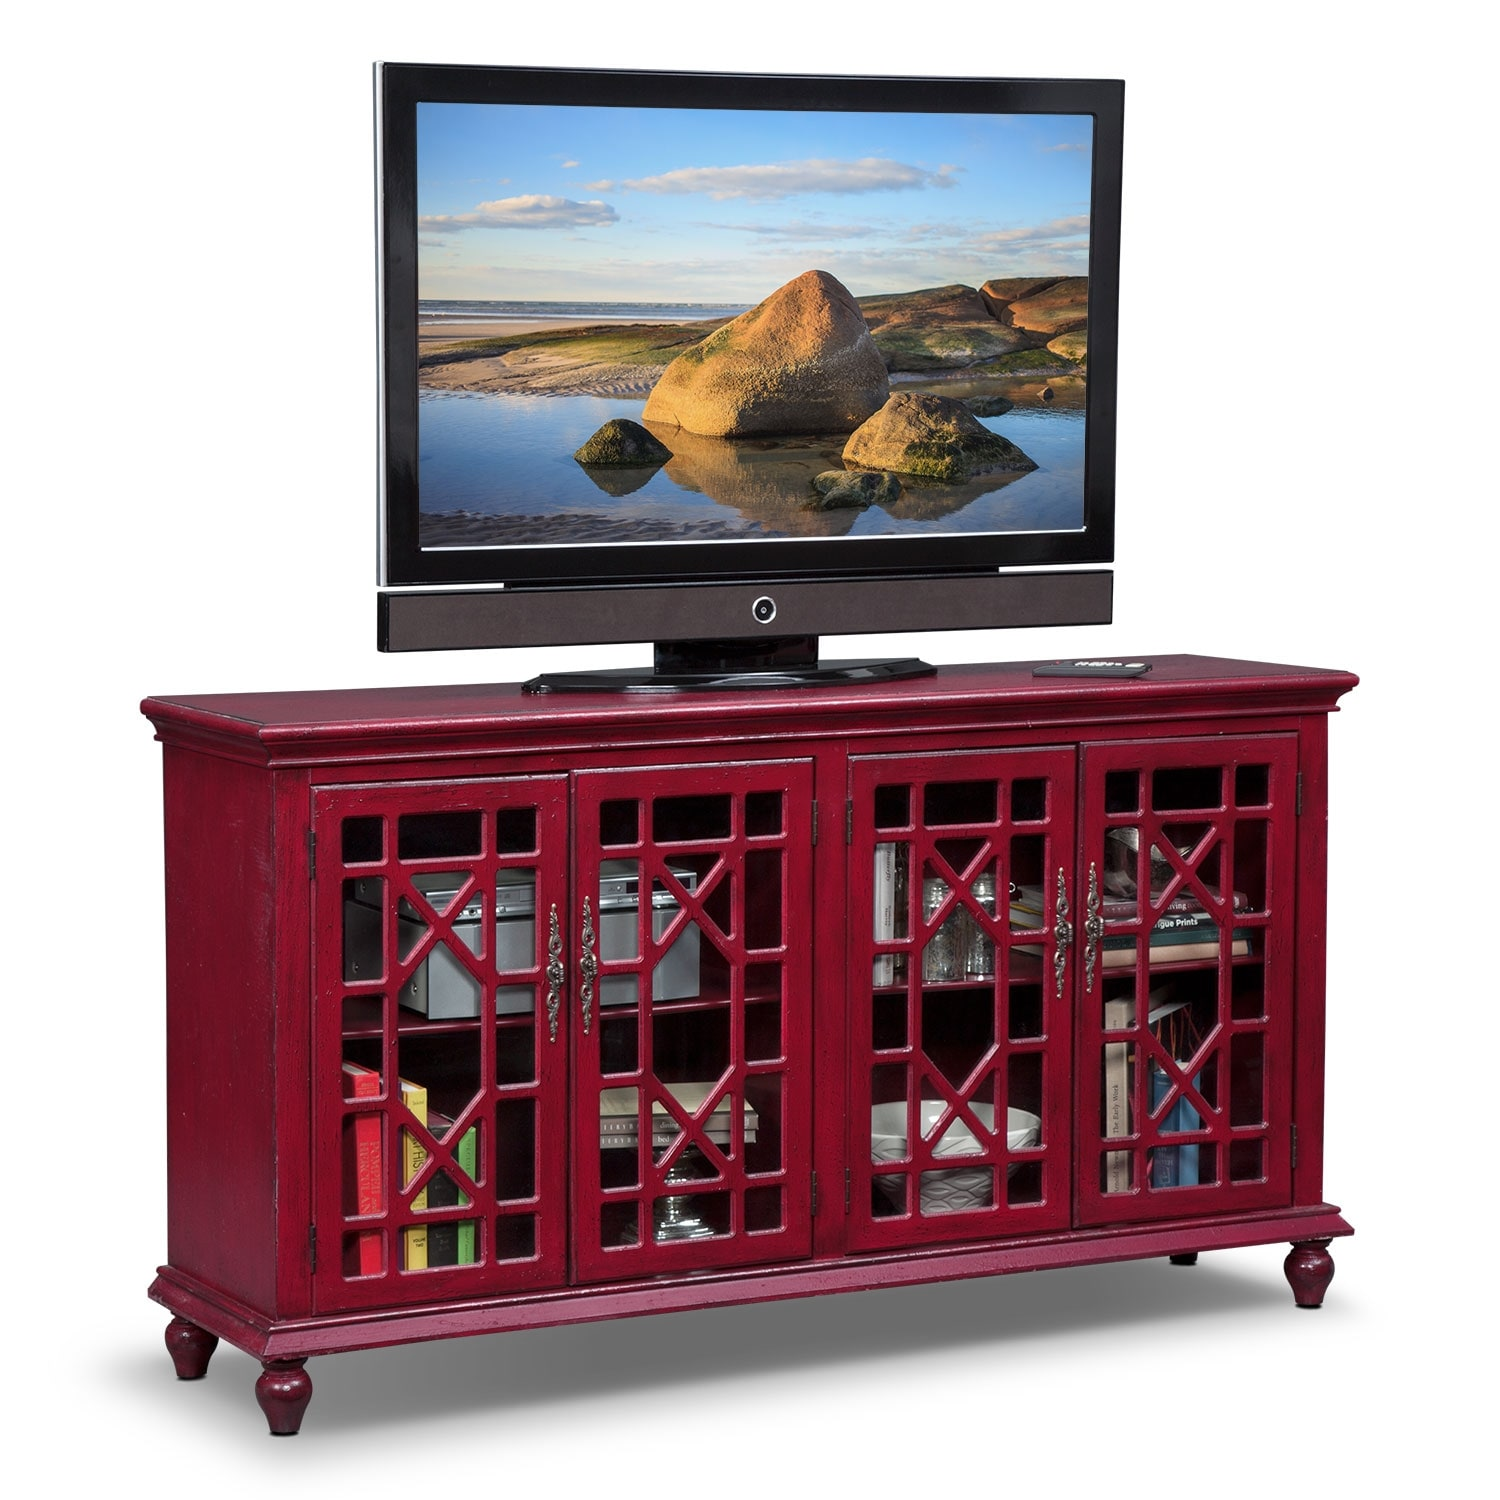 Grenoble Media Credenza - Red